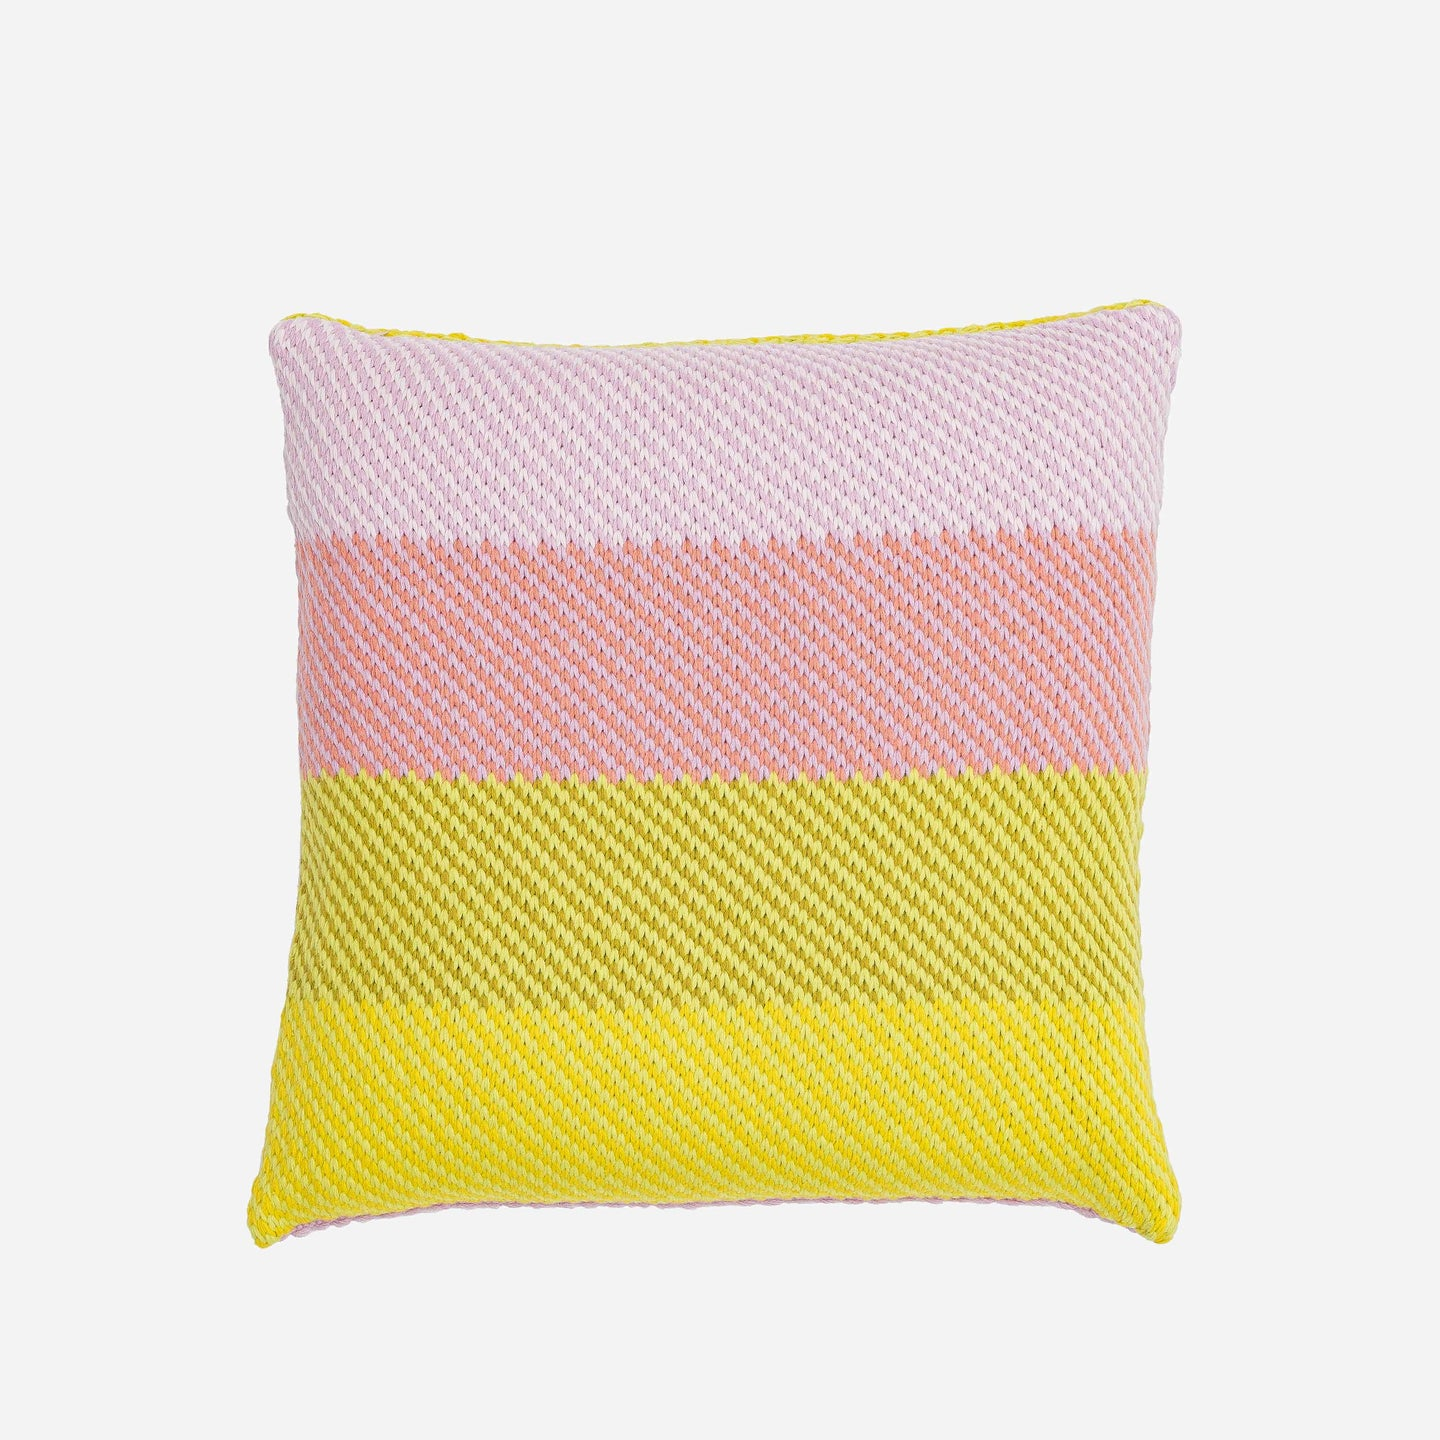 Slant Stripes Diagonal Knit Pillow Cover Gradient